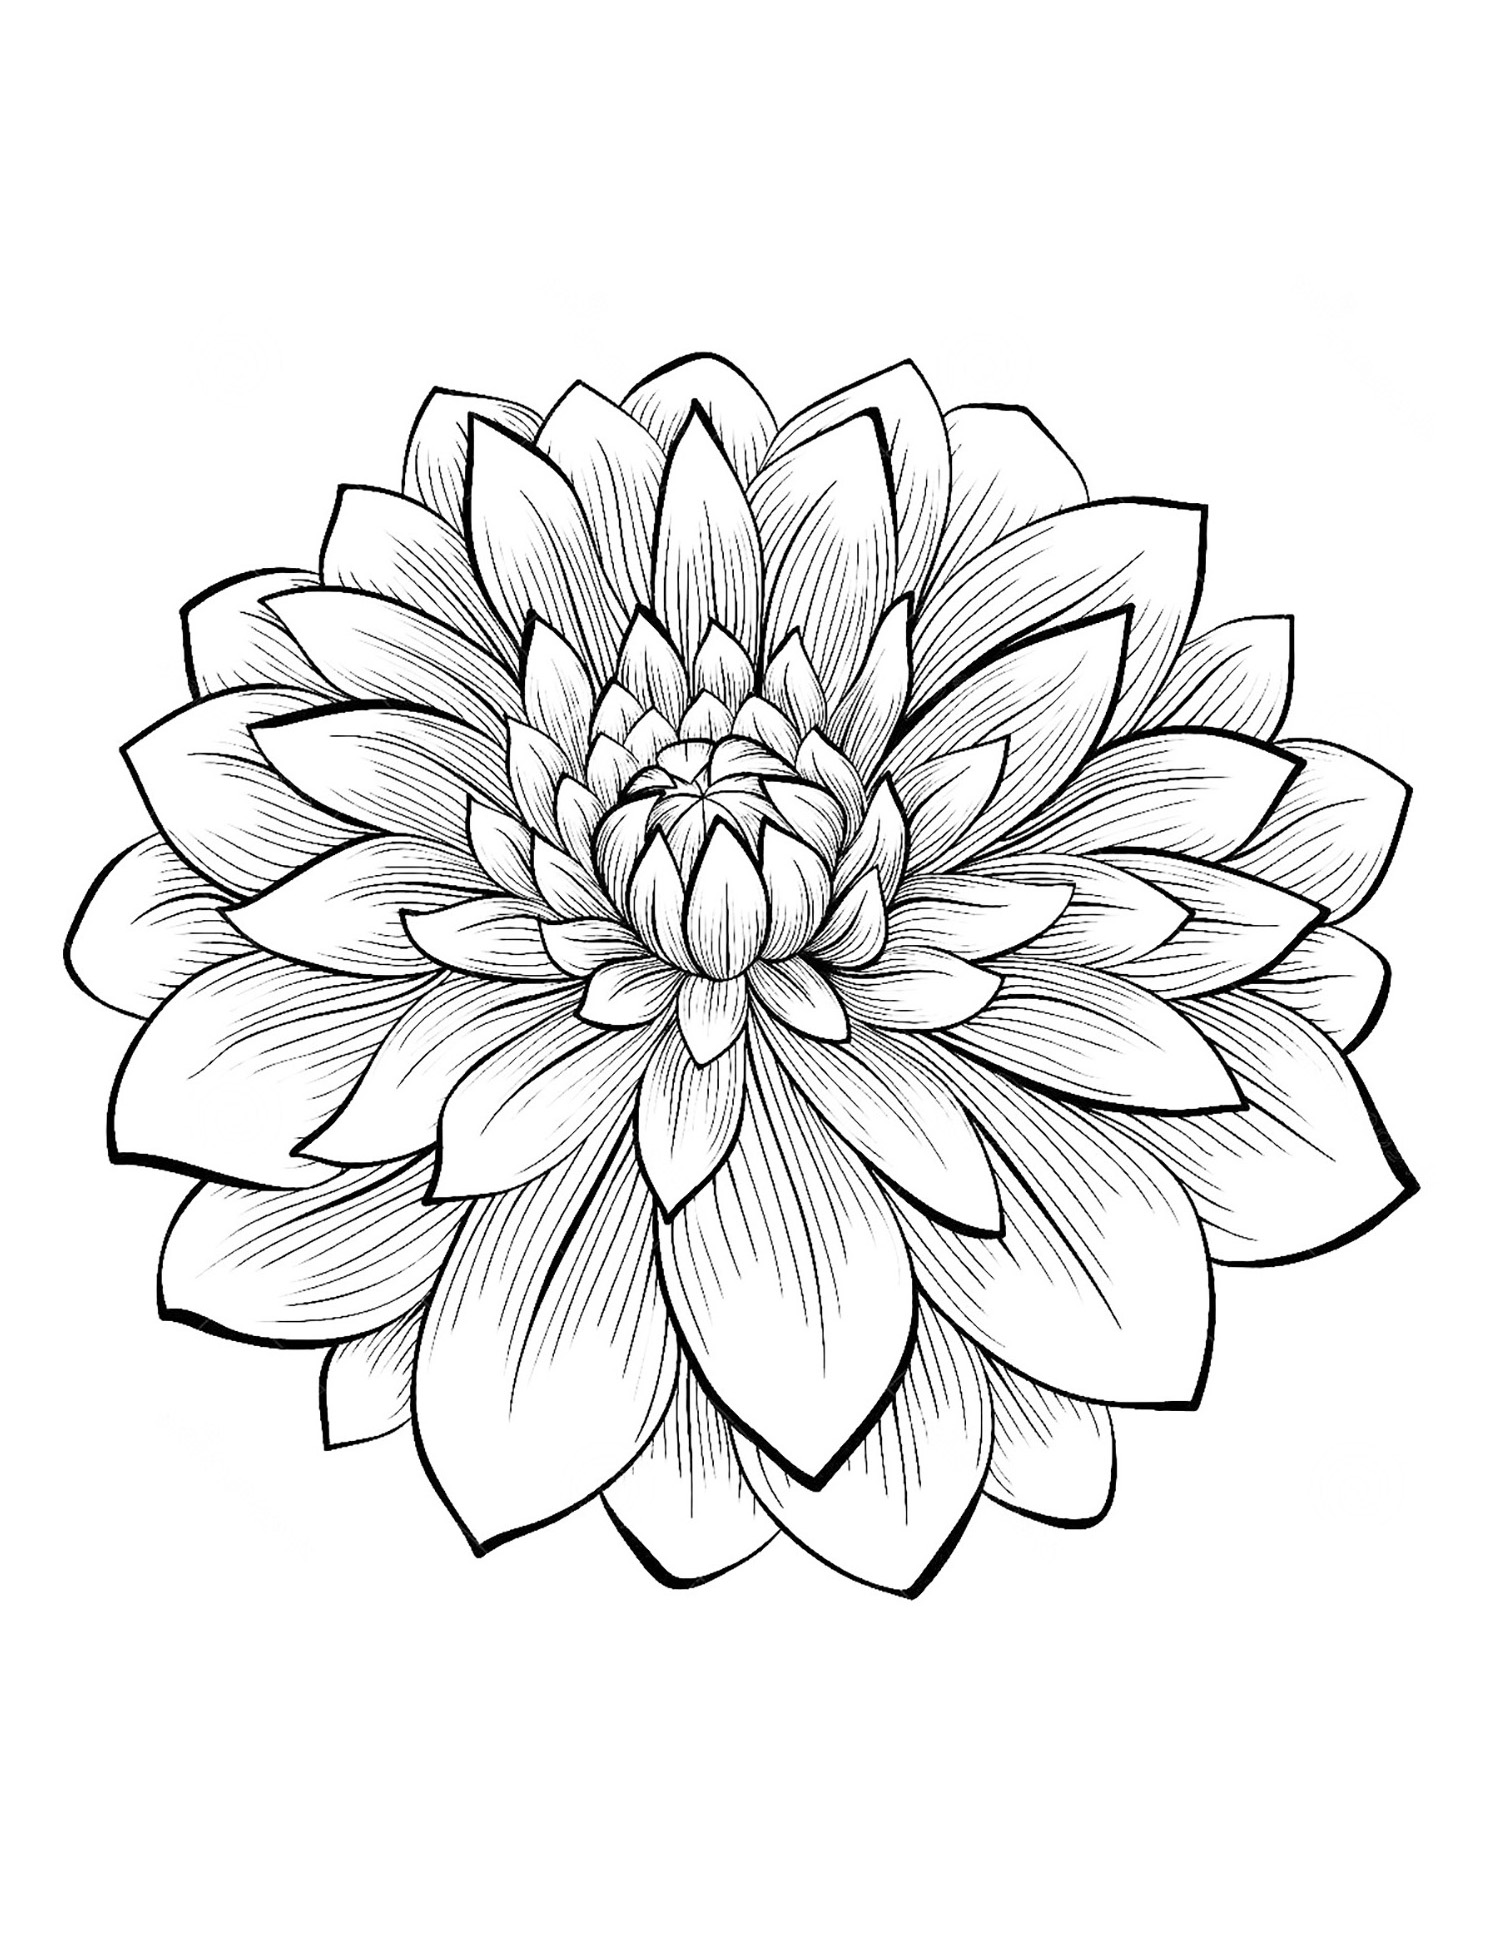 picture of a flower to color flowers in two parts flowers adult coloring pages a picture flower to color of